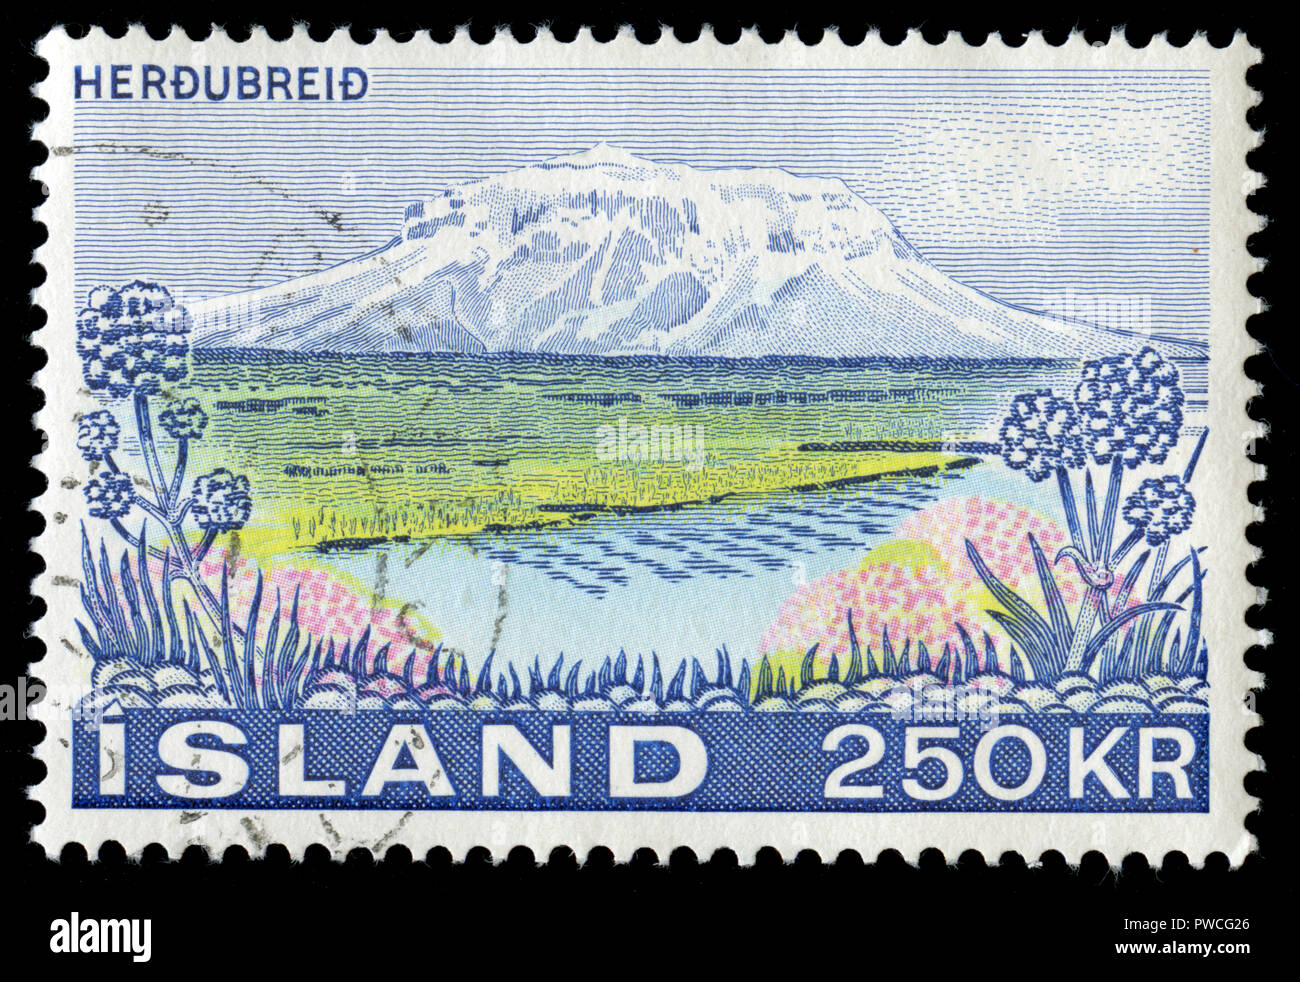 Postmarked stamp from Iceland in the Landscapes series issued in 1972 - Stock Image